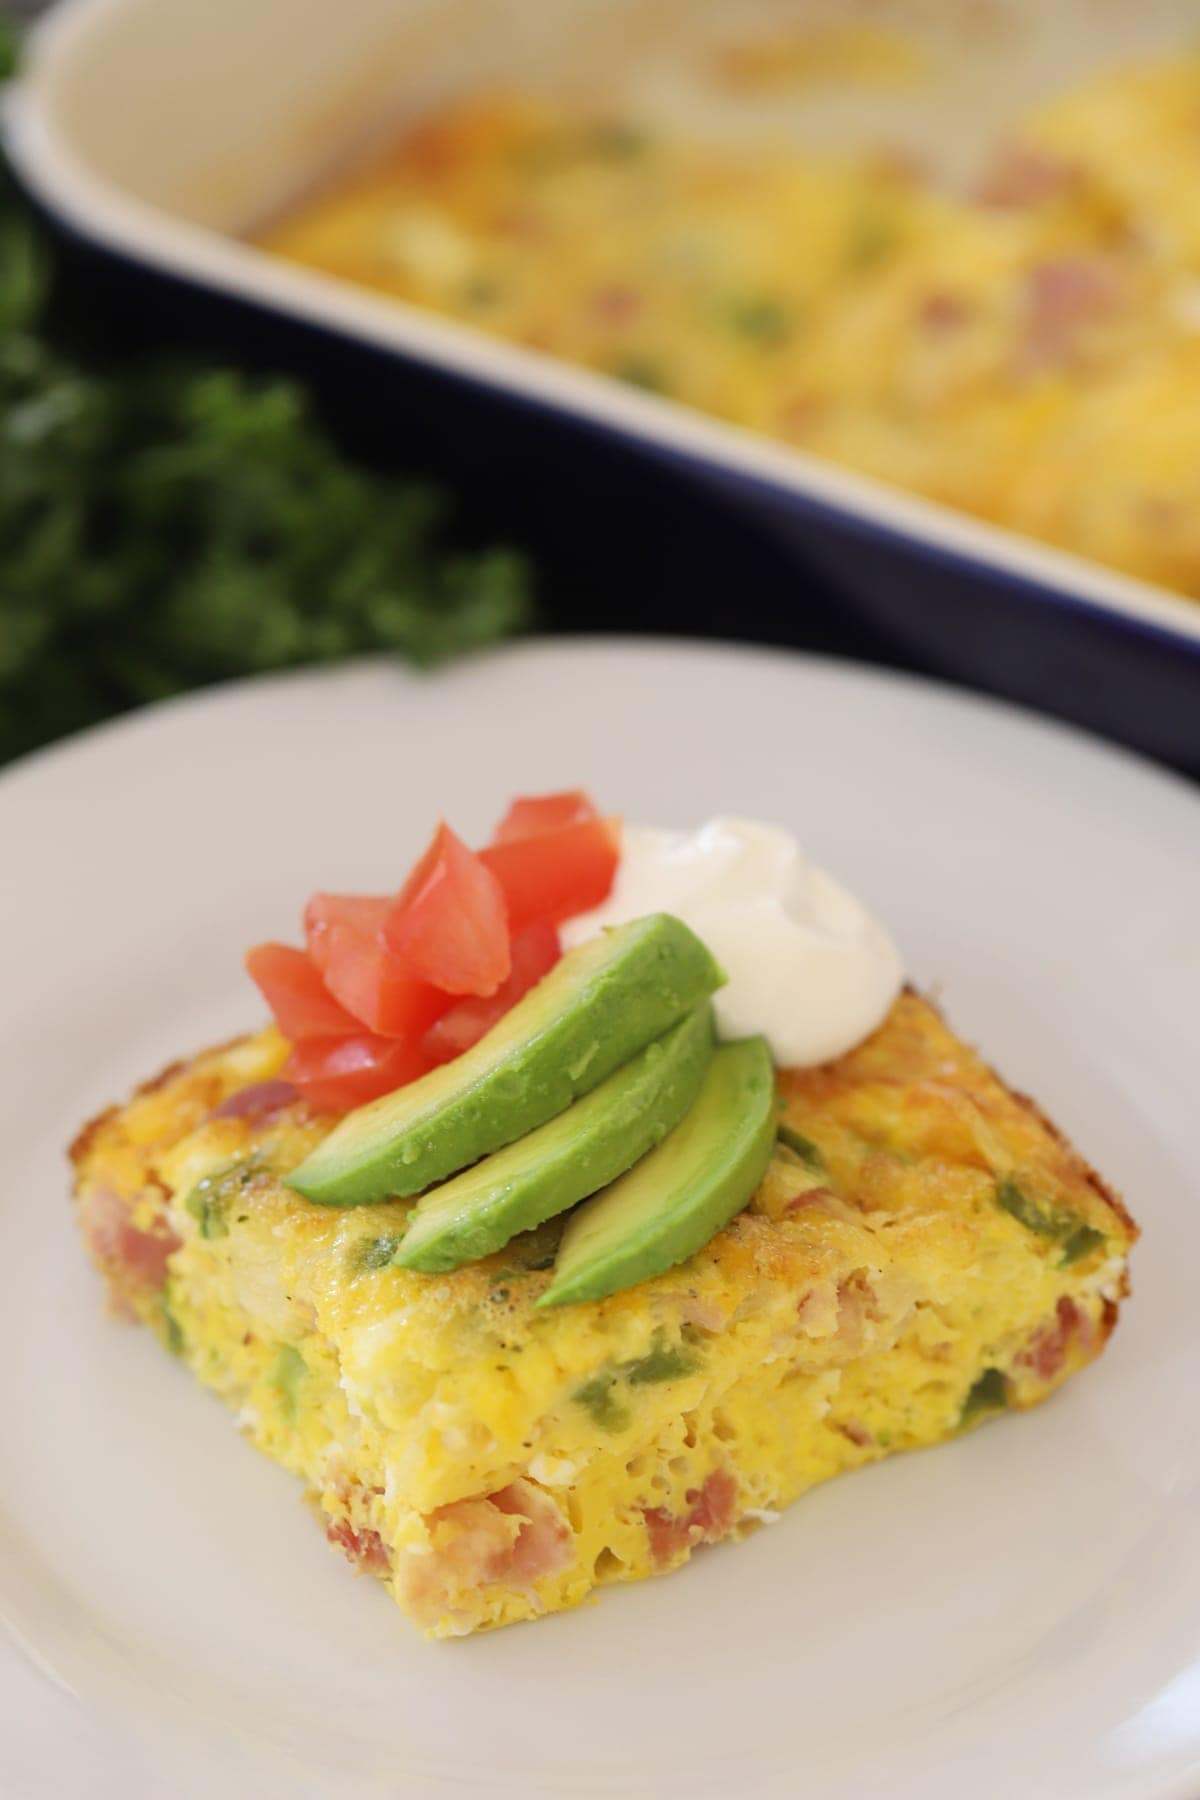 Baked Denver Omelet on a white plate, covered in sour cream, diced tomatoes and sliced avocado